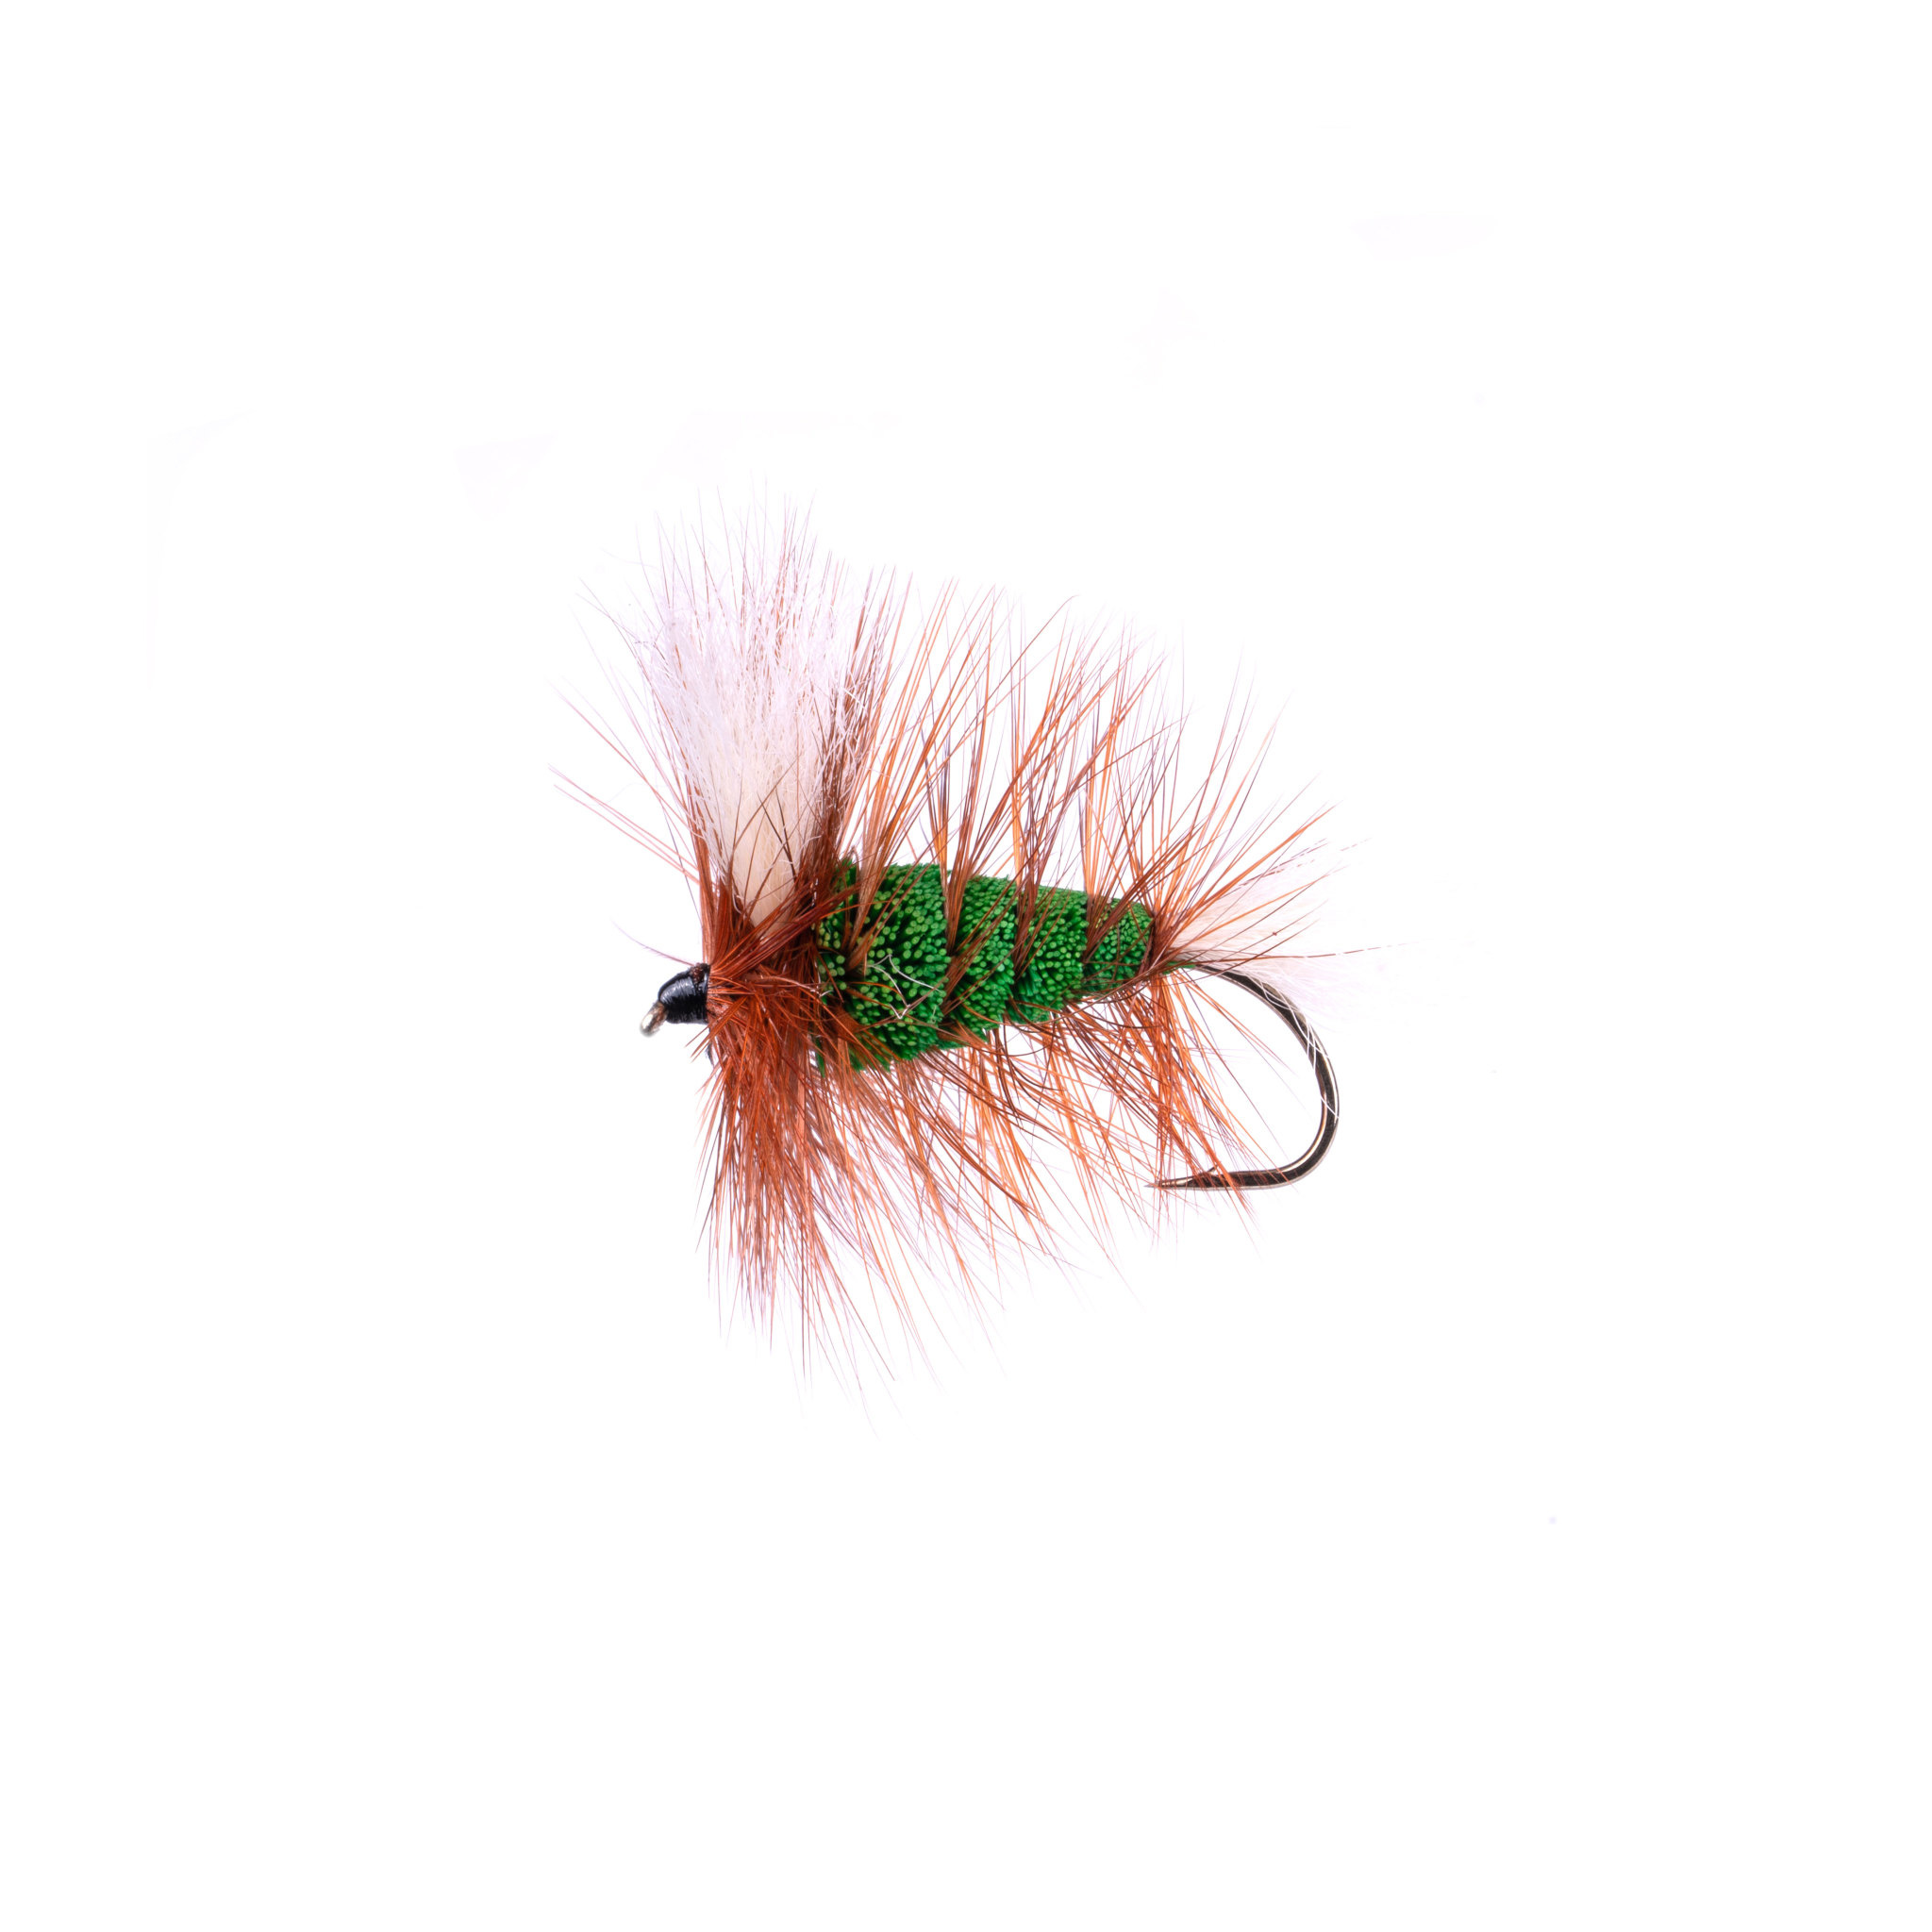 Green-With Tail-brown Hackle (Wulff Bomber #4